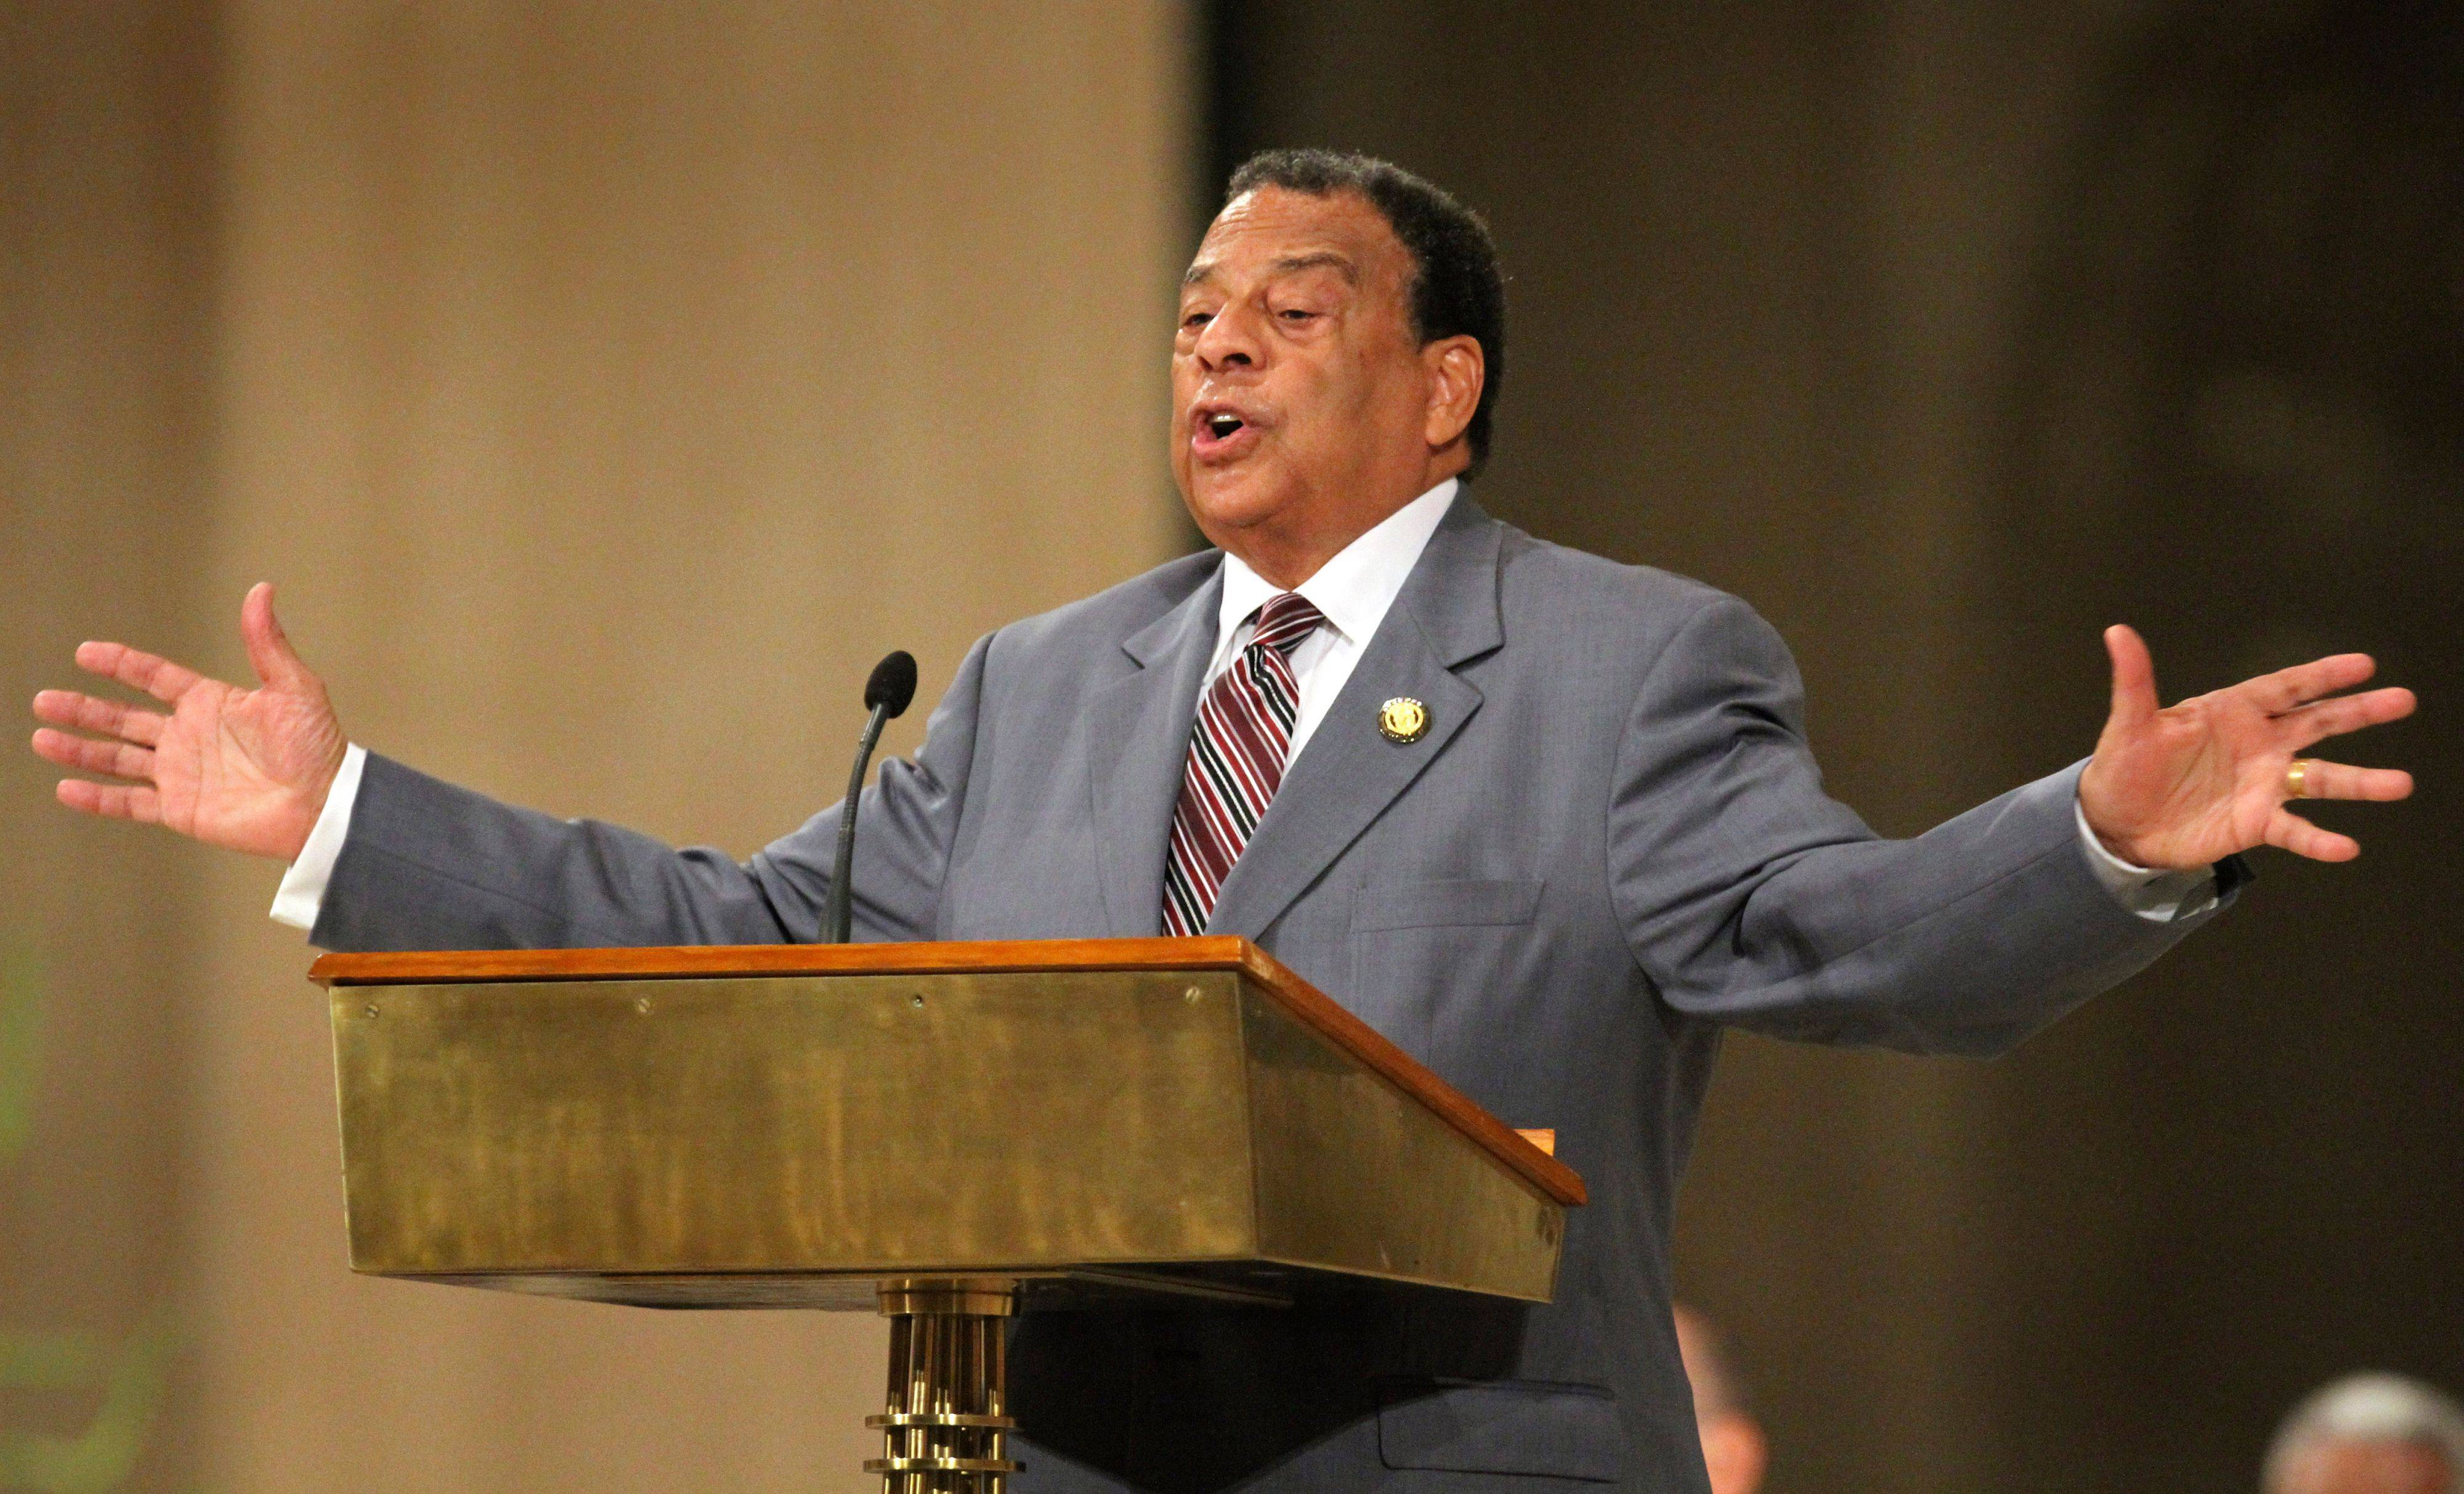 On Aug. 27, Andrew Young, former ambassador to the United Nations, pays tribute to the Rev. Dr. Martin Luther King Jr. during an interfaith prayer service in honor of King at the Basilica of the National Shrine of the Immaculate Conception in Washington. Veterans of past social movements, such as Young, say the Occupy Wall Street protest has been a welcome response to the abysmal economy and has the potential to galvanize wide support, but whether it will lead to lasting political change remains to be seen.